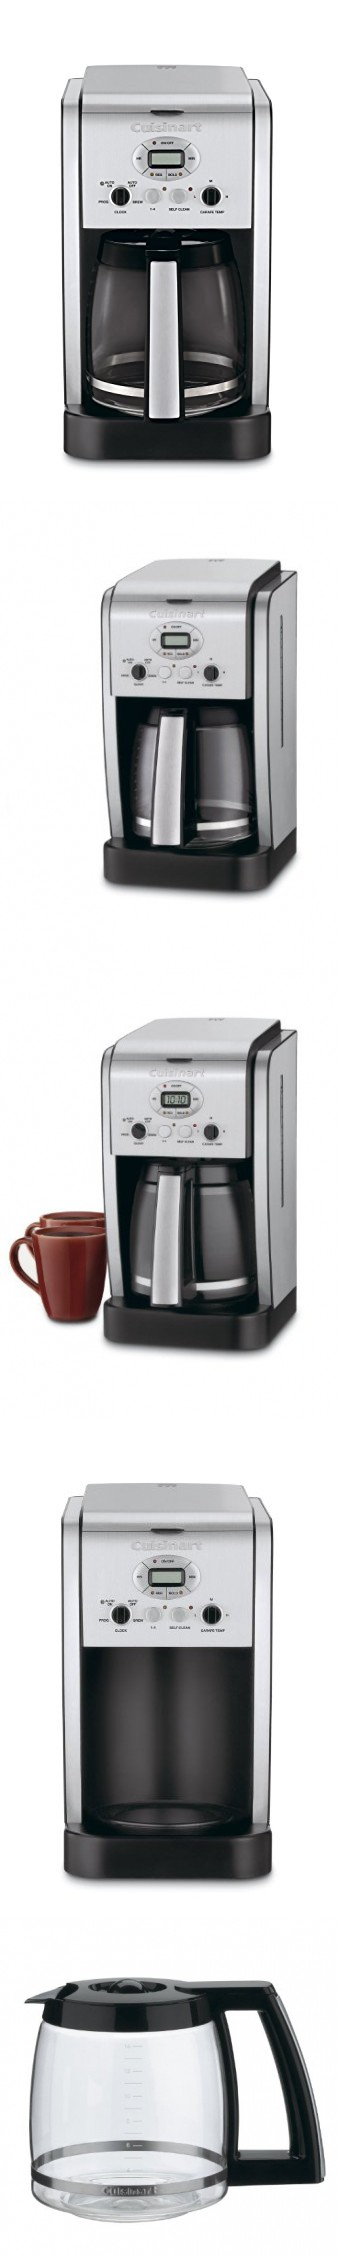 Cuisinart Dcc 2600 Brew Central 14 Cup Programmable Coffeemaker With Glass Carafe Stainless Steel Certified Refurbished Glass Carafe Coffee Maker